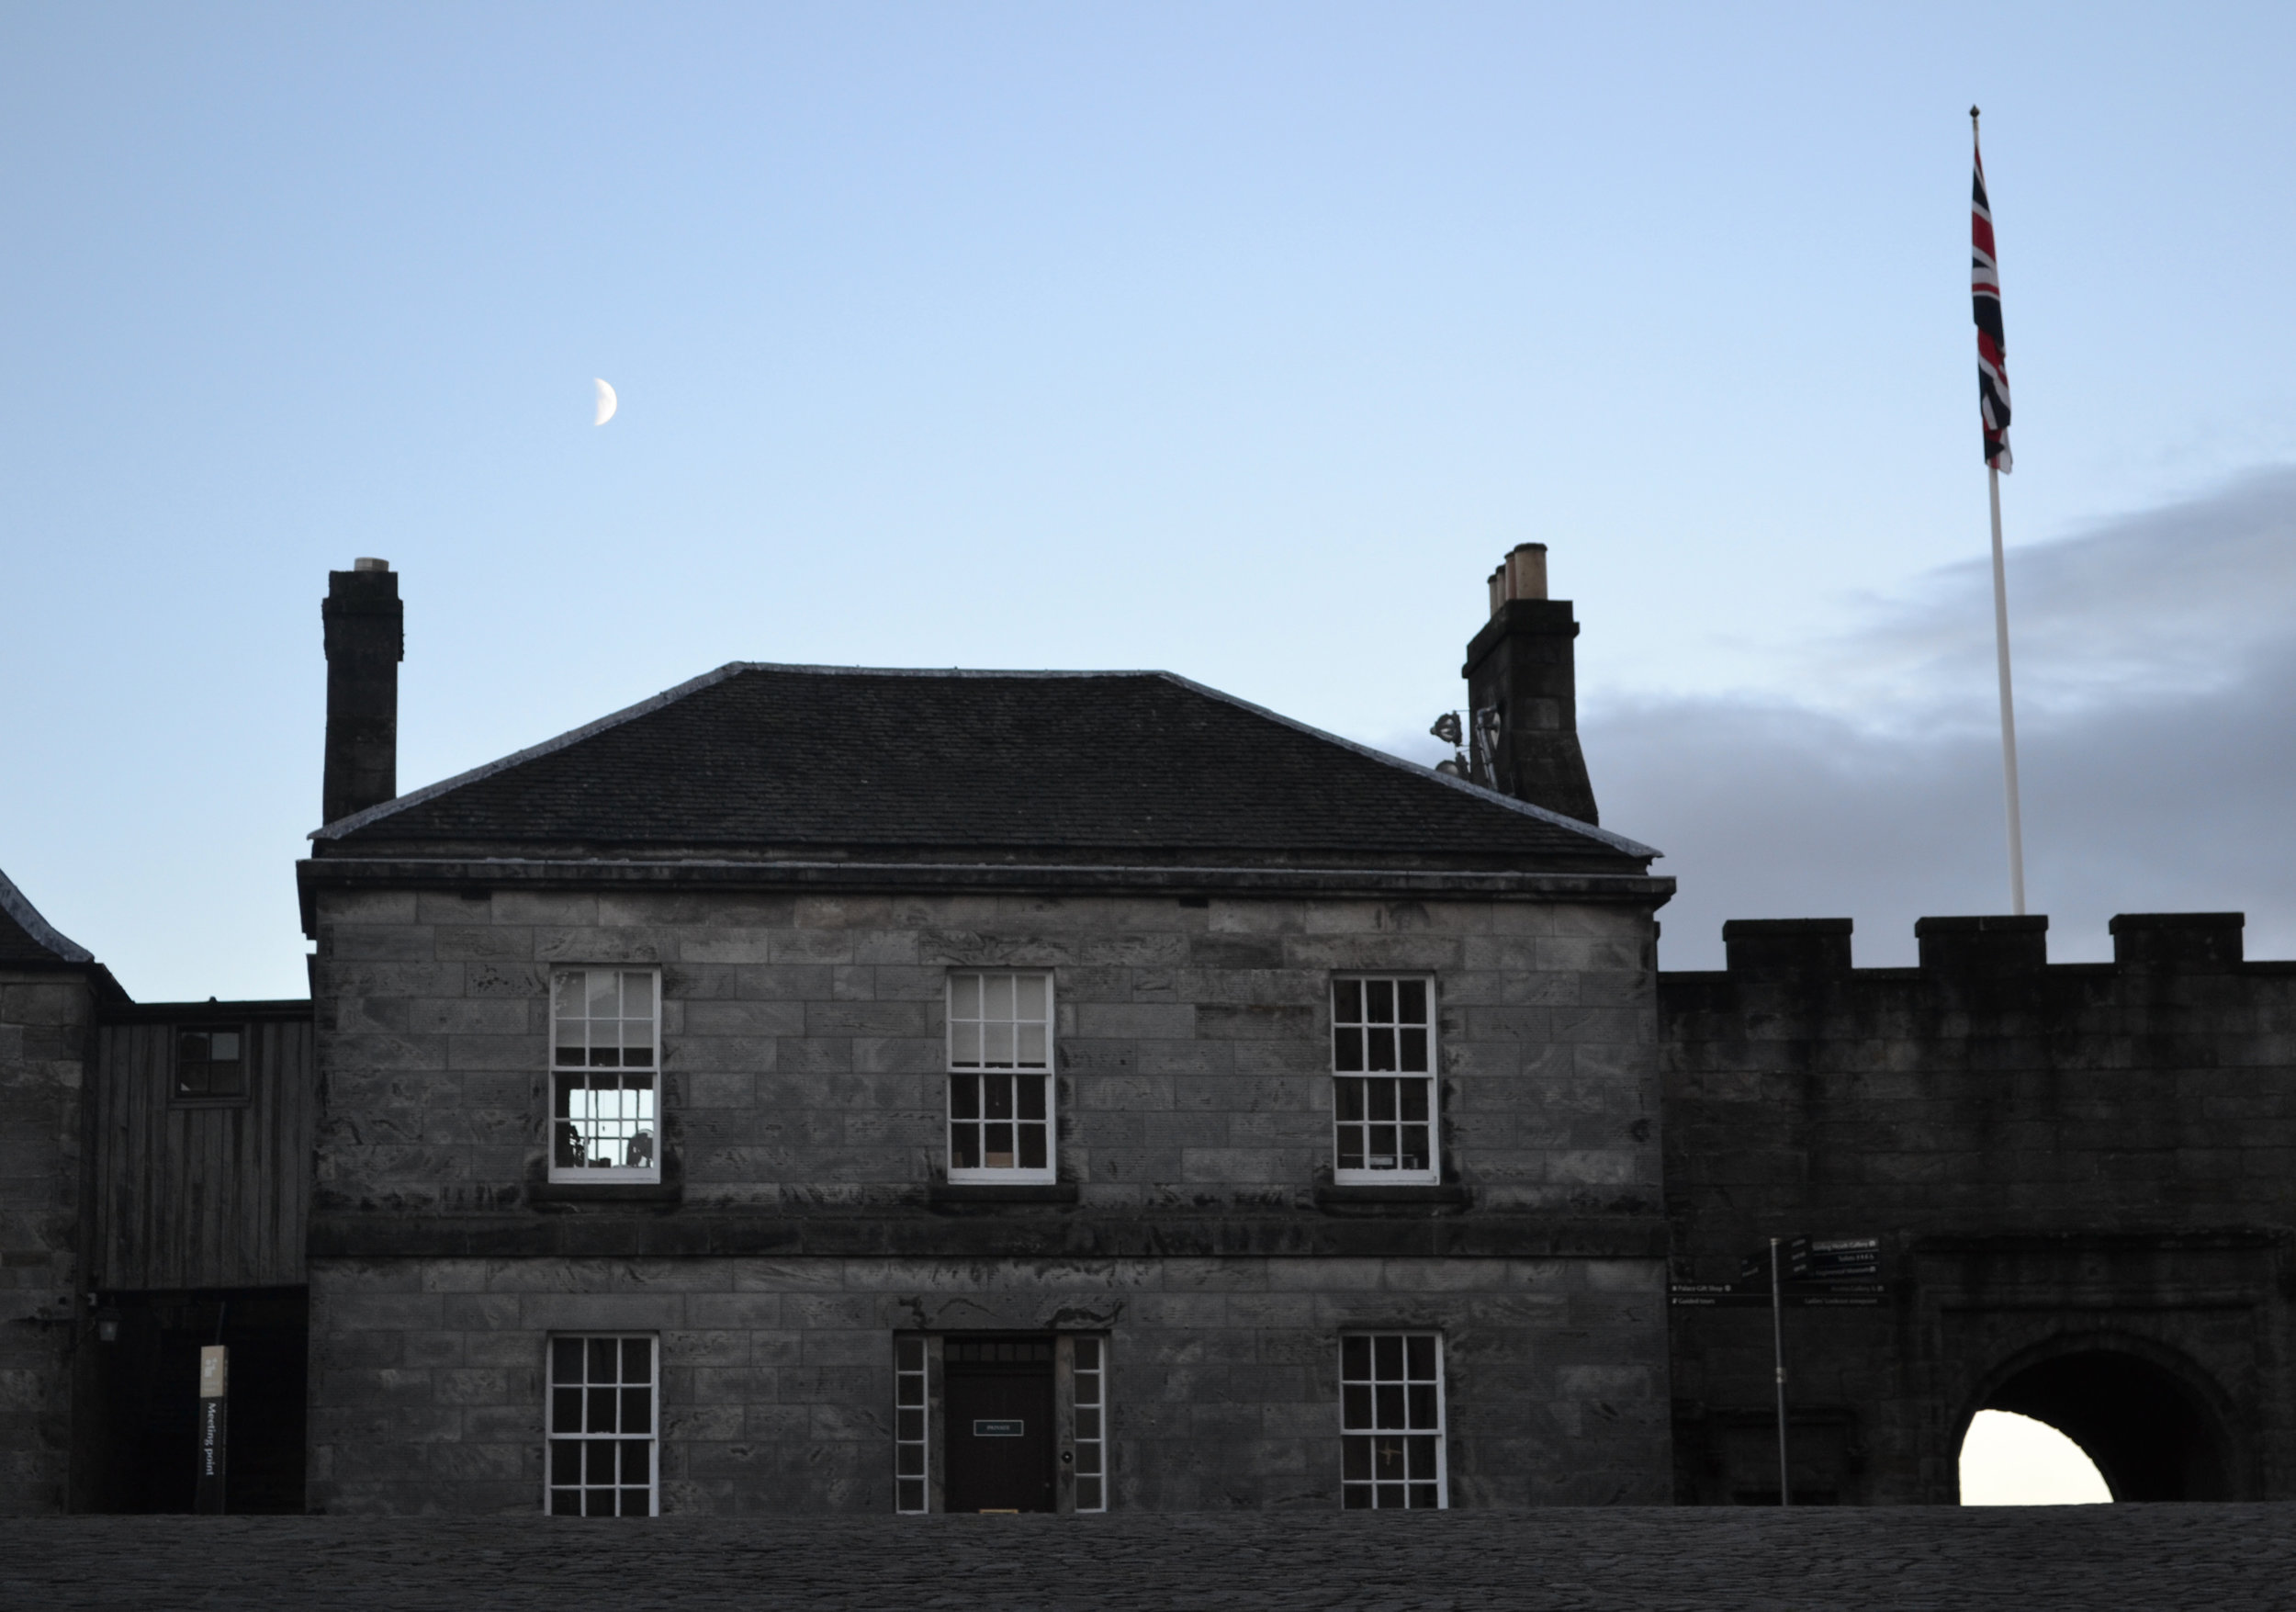 Moon rising over Stirling Castle.